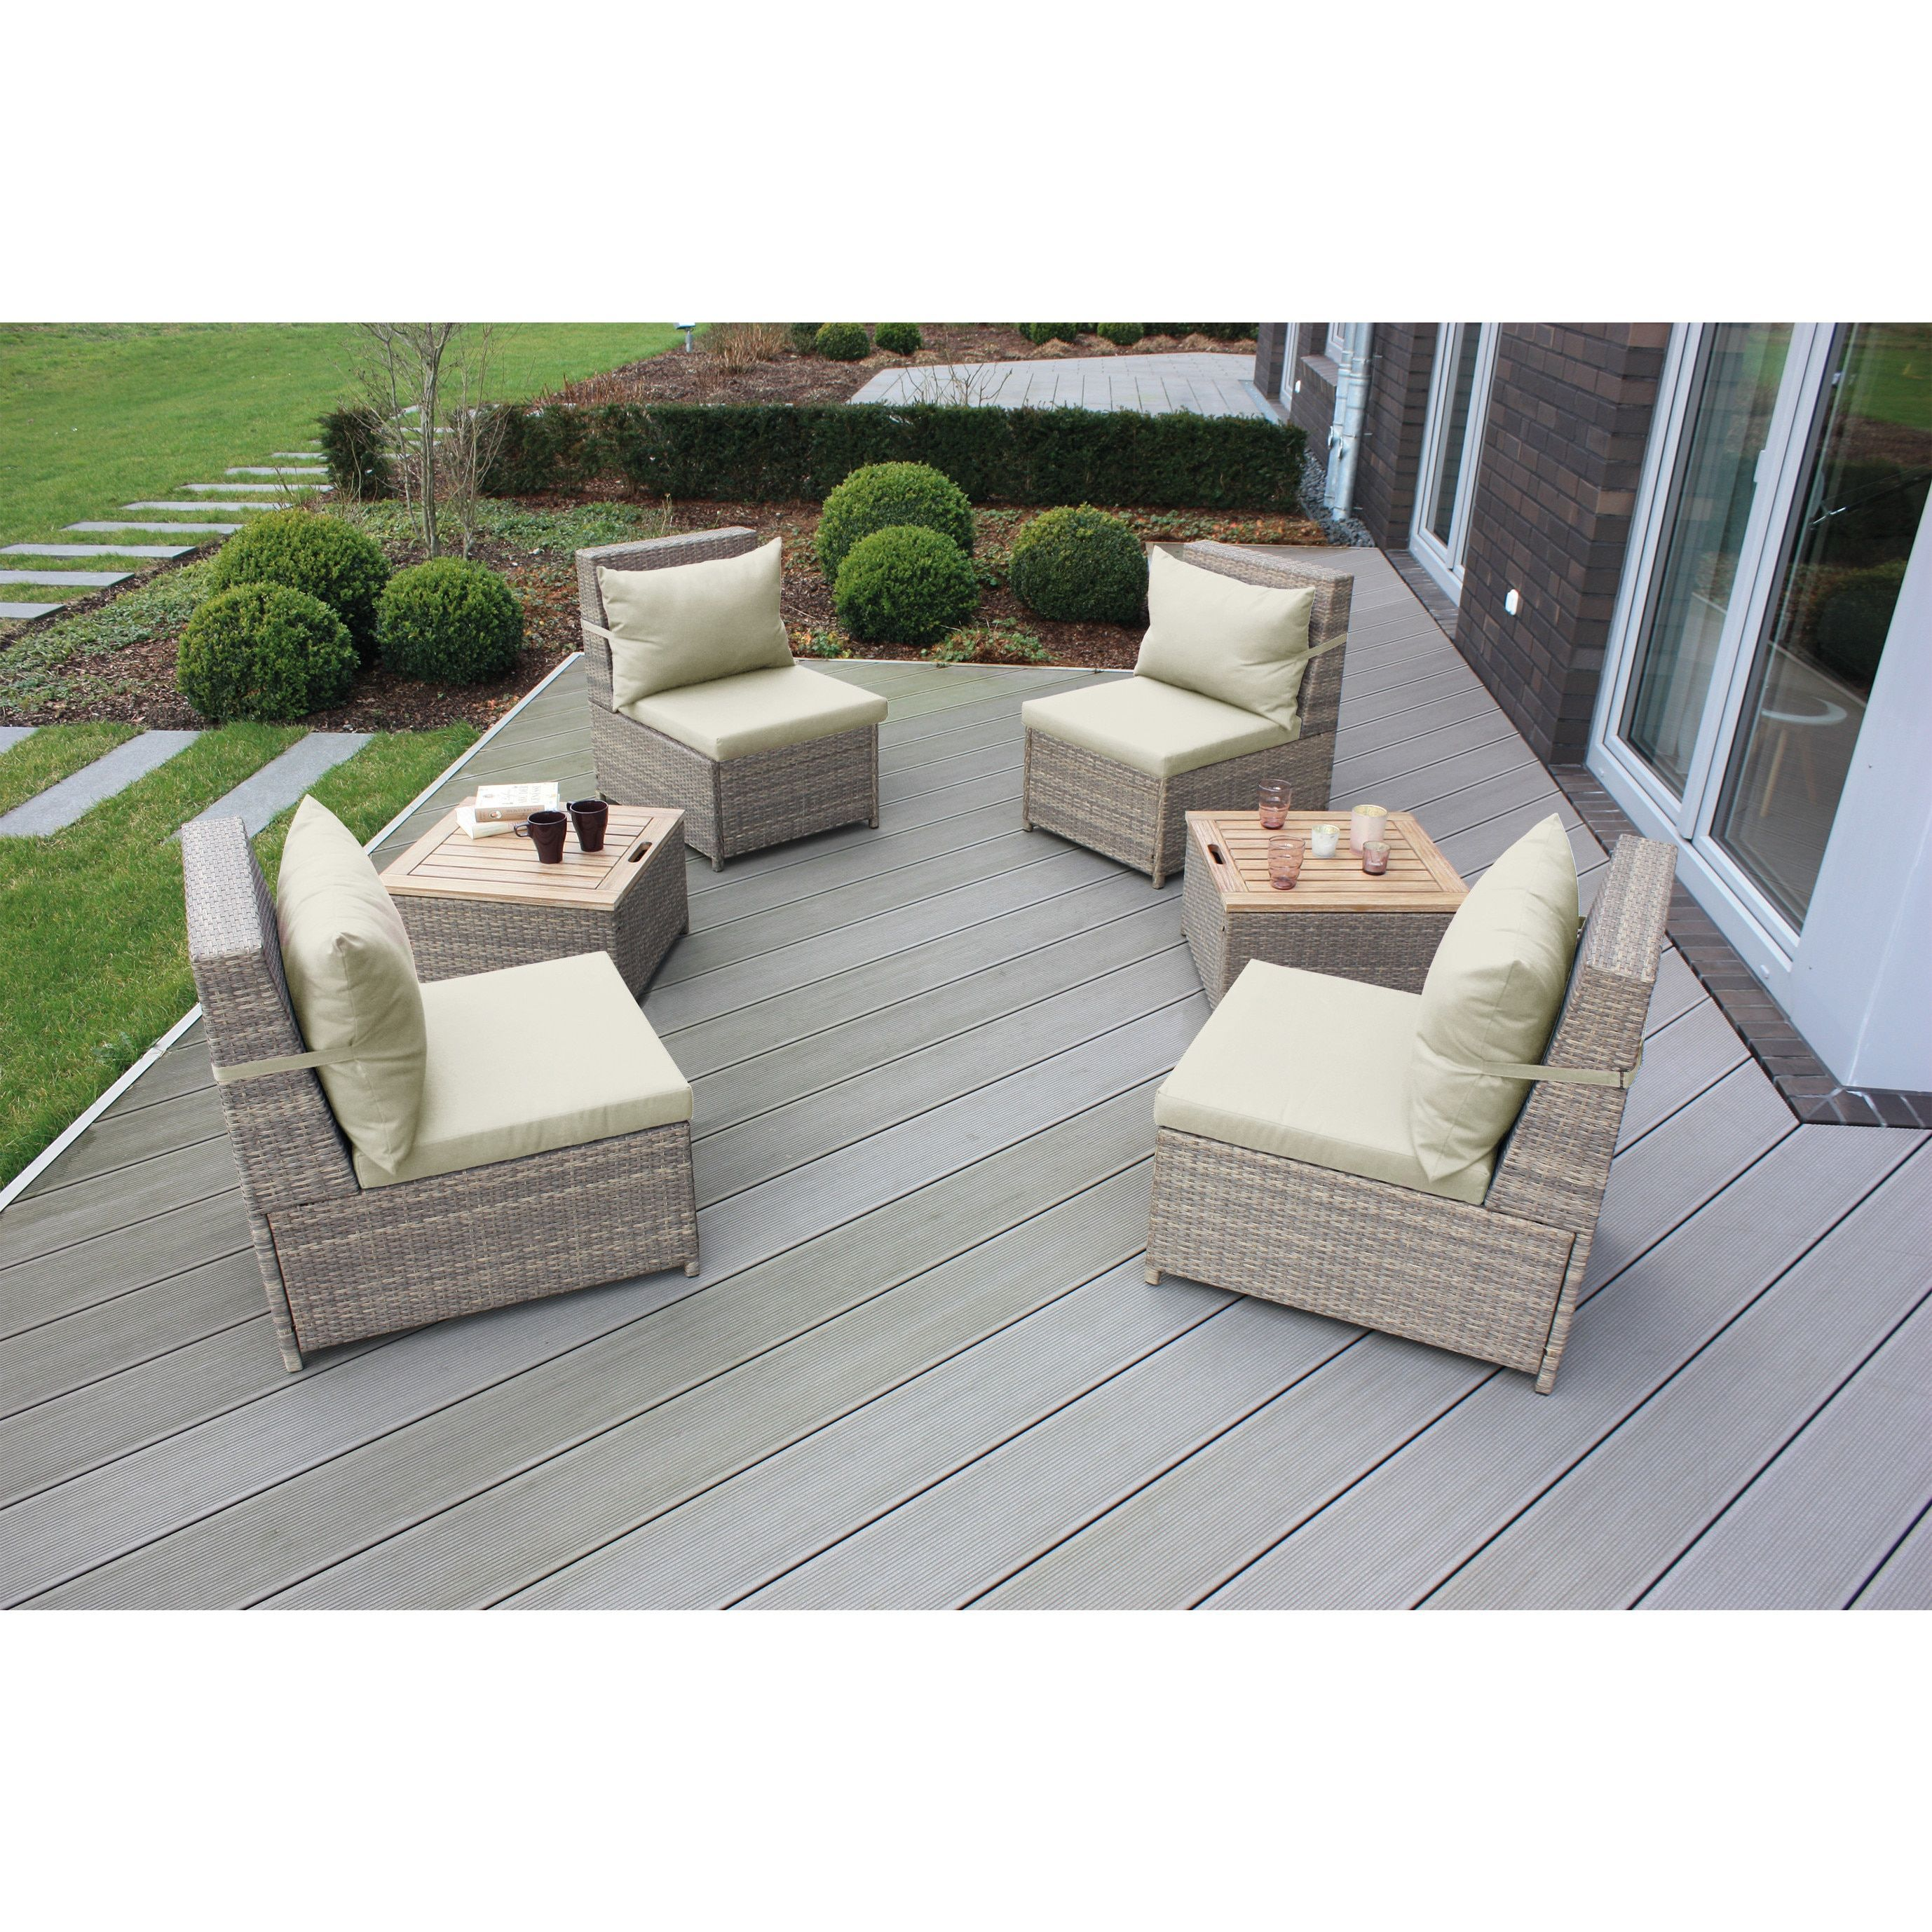 Landmann budapest 6 pc wicker patio set brown walnut patio furniture acacia